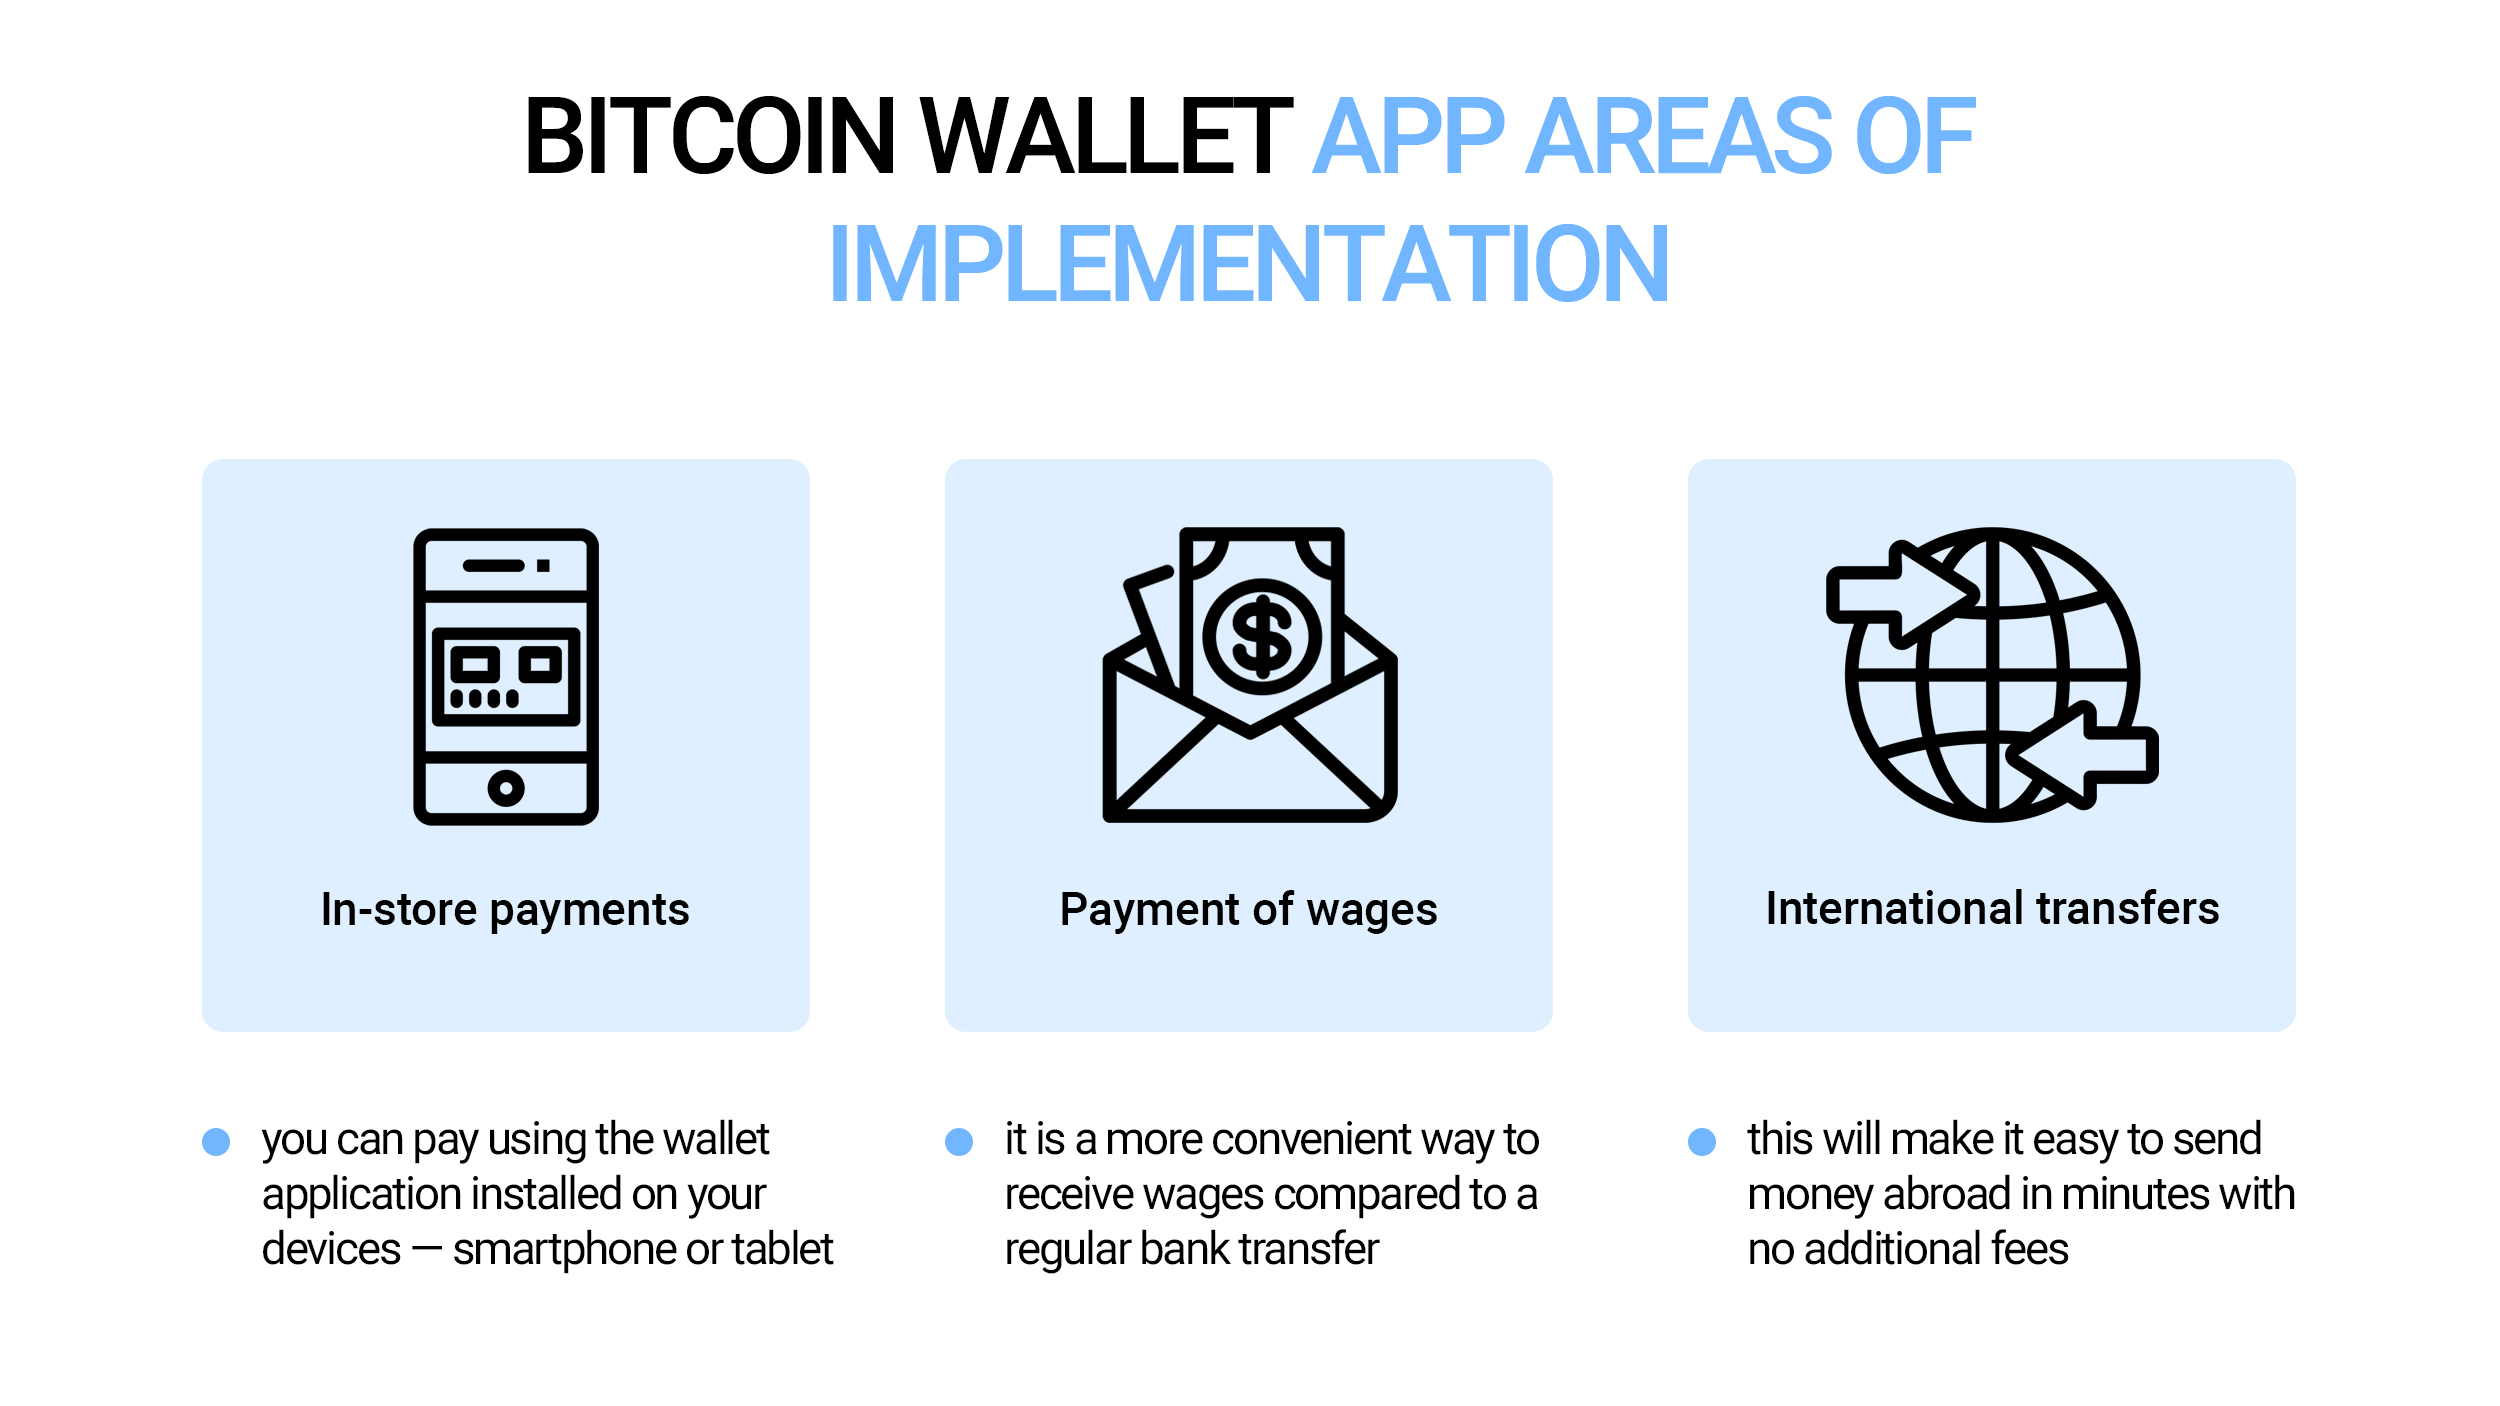 Bitcoin wallet app areas of implementation